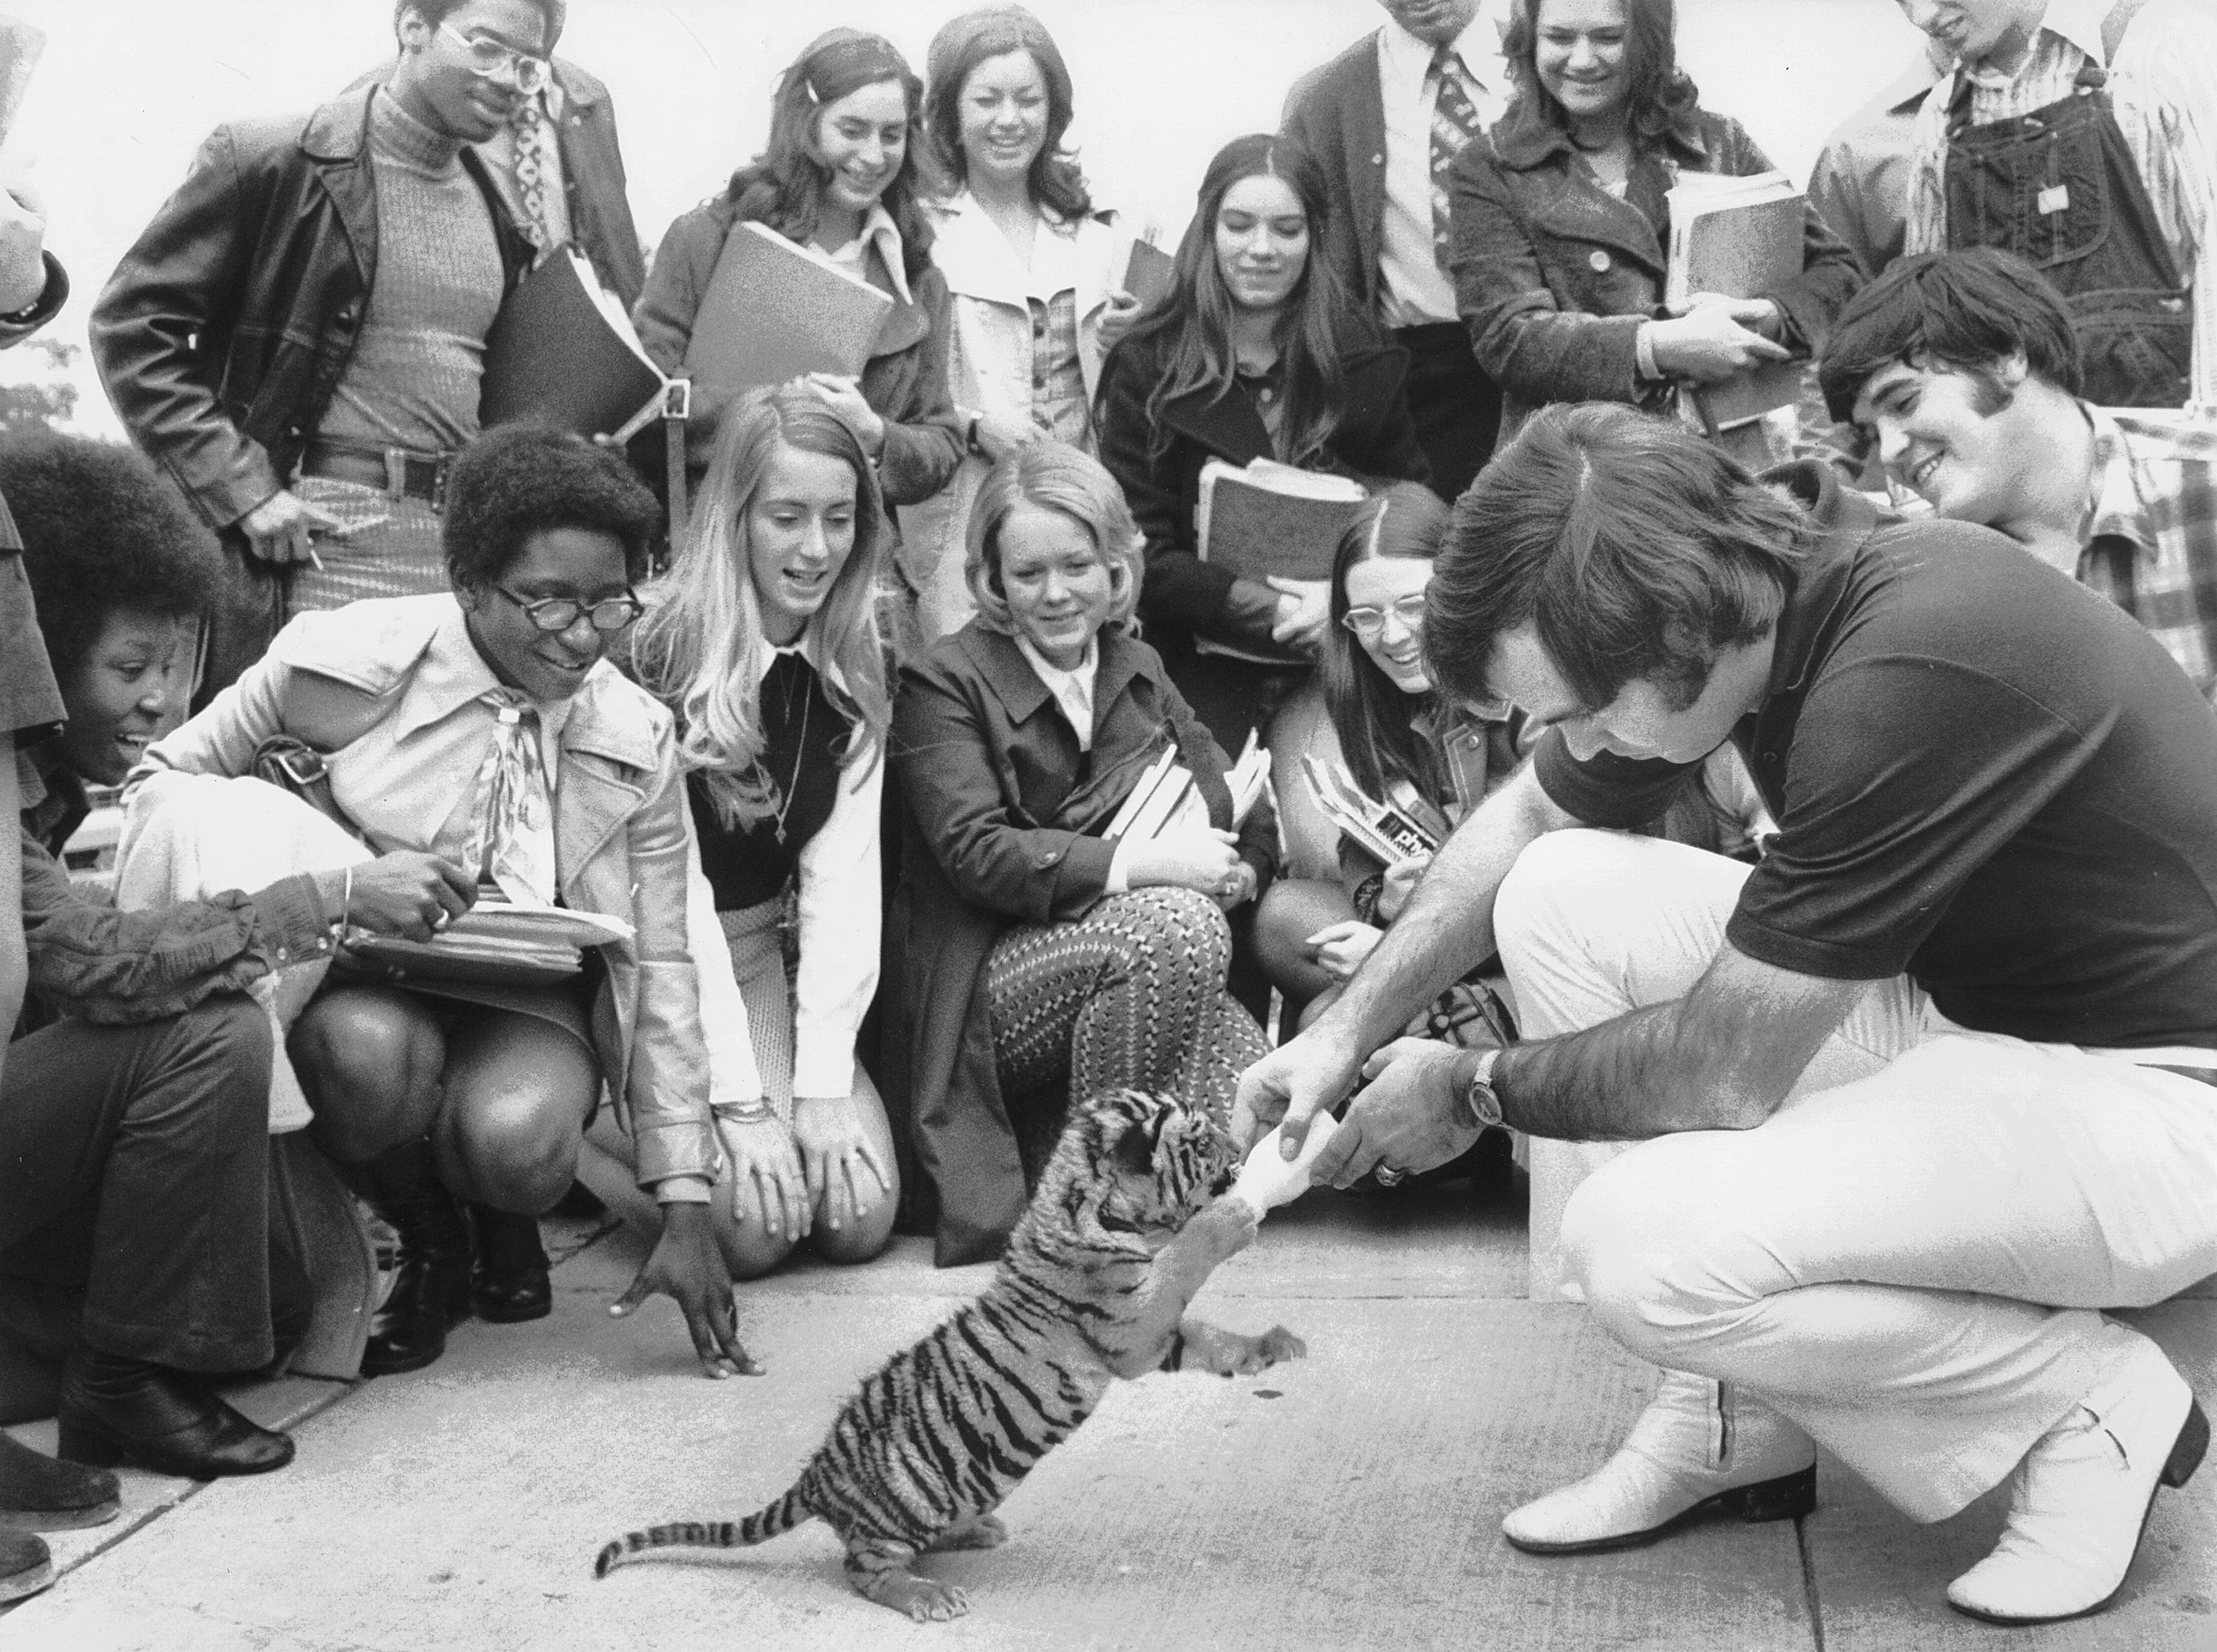 MSU's new, and yet unnamed mascot, a 7 1/2 pound Bengal tiger, takes a lunch break during his introduction to students by handler Bill Poarch on November 10, 1972. The young mascot was purchased from a Danville, Illinois, animal broker by the Highland Hundred booster group for $1,500 and was to be introduced to the public during pregame ceremonies of the Tigers game with Cincinnati the following day.